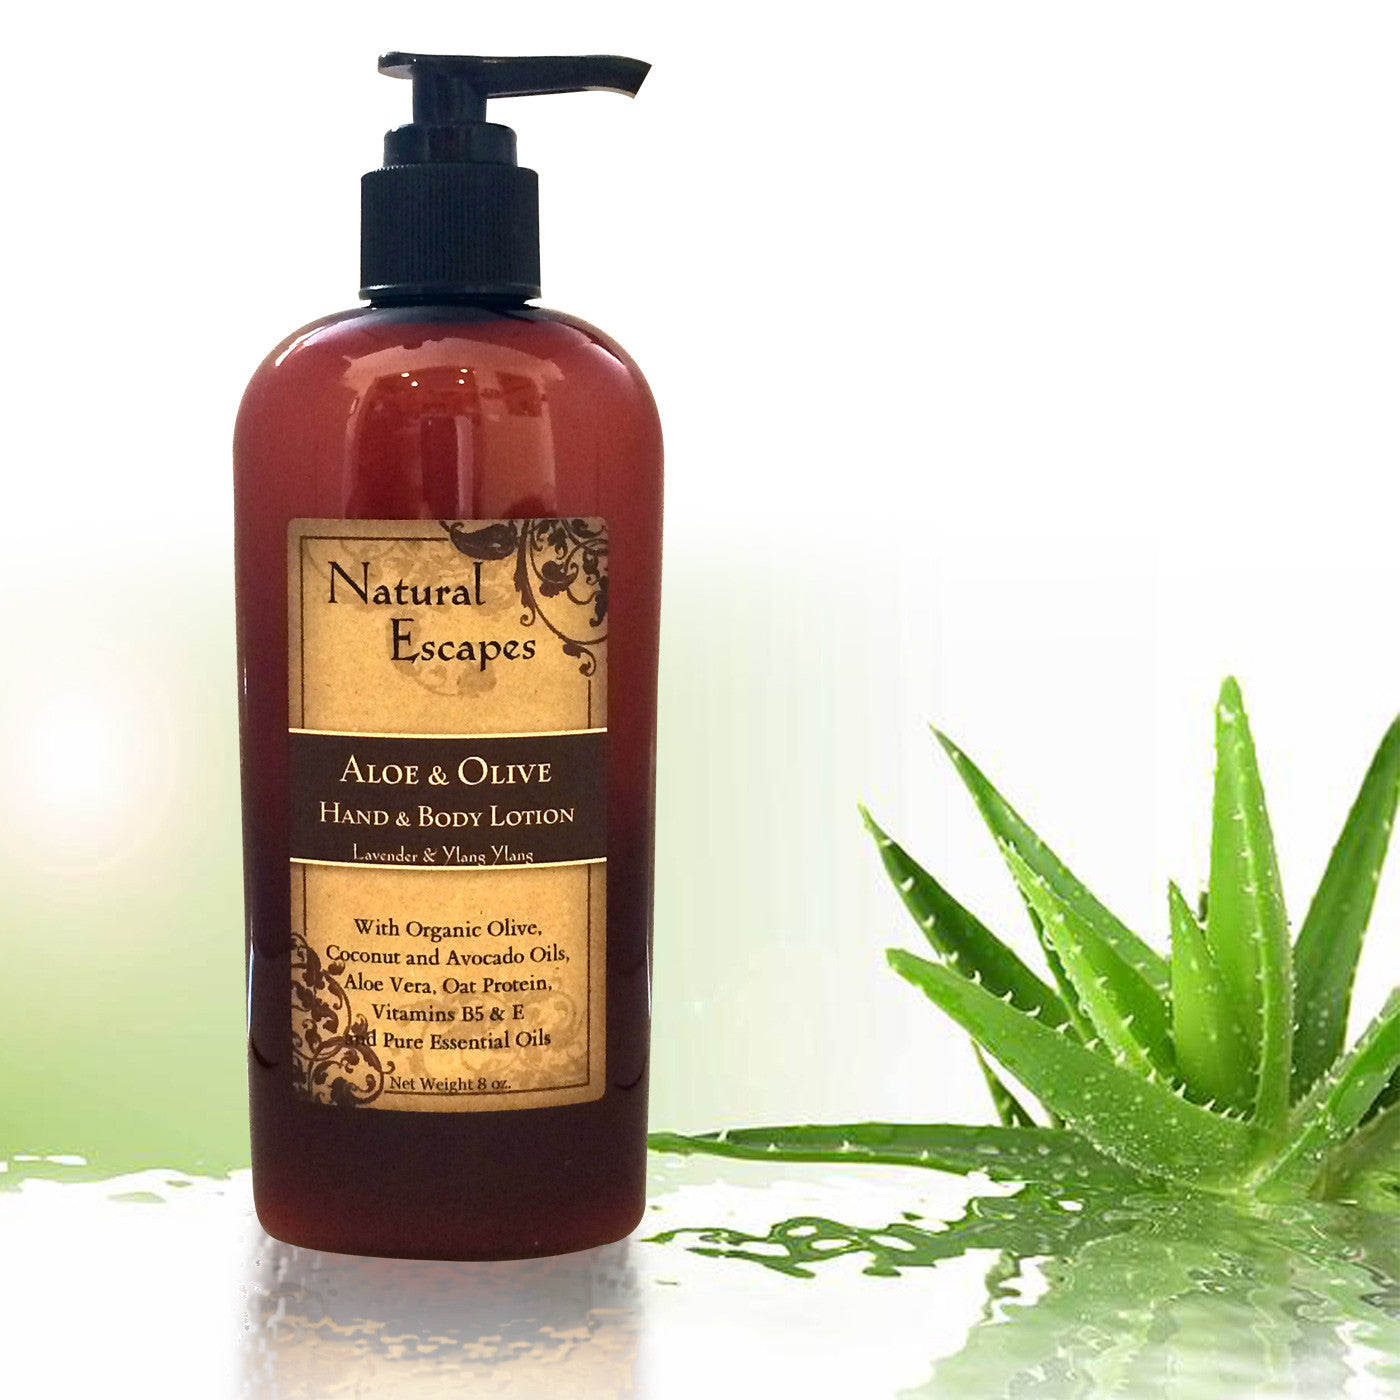 Lavender Aloe & Olive Hand & Body Lotion